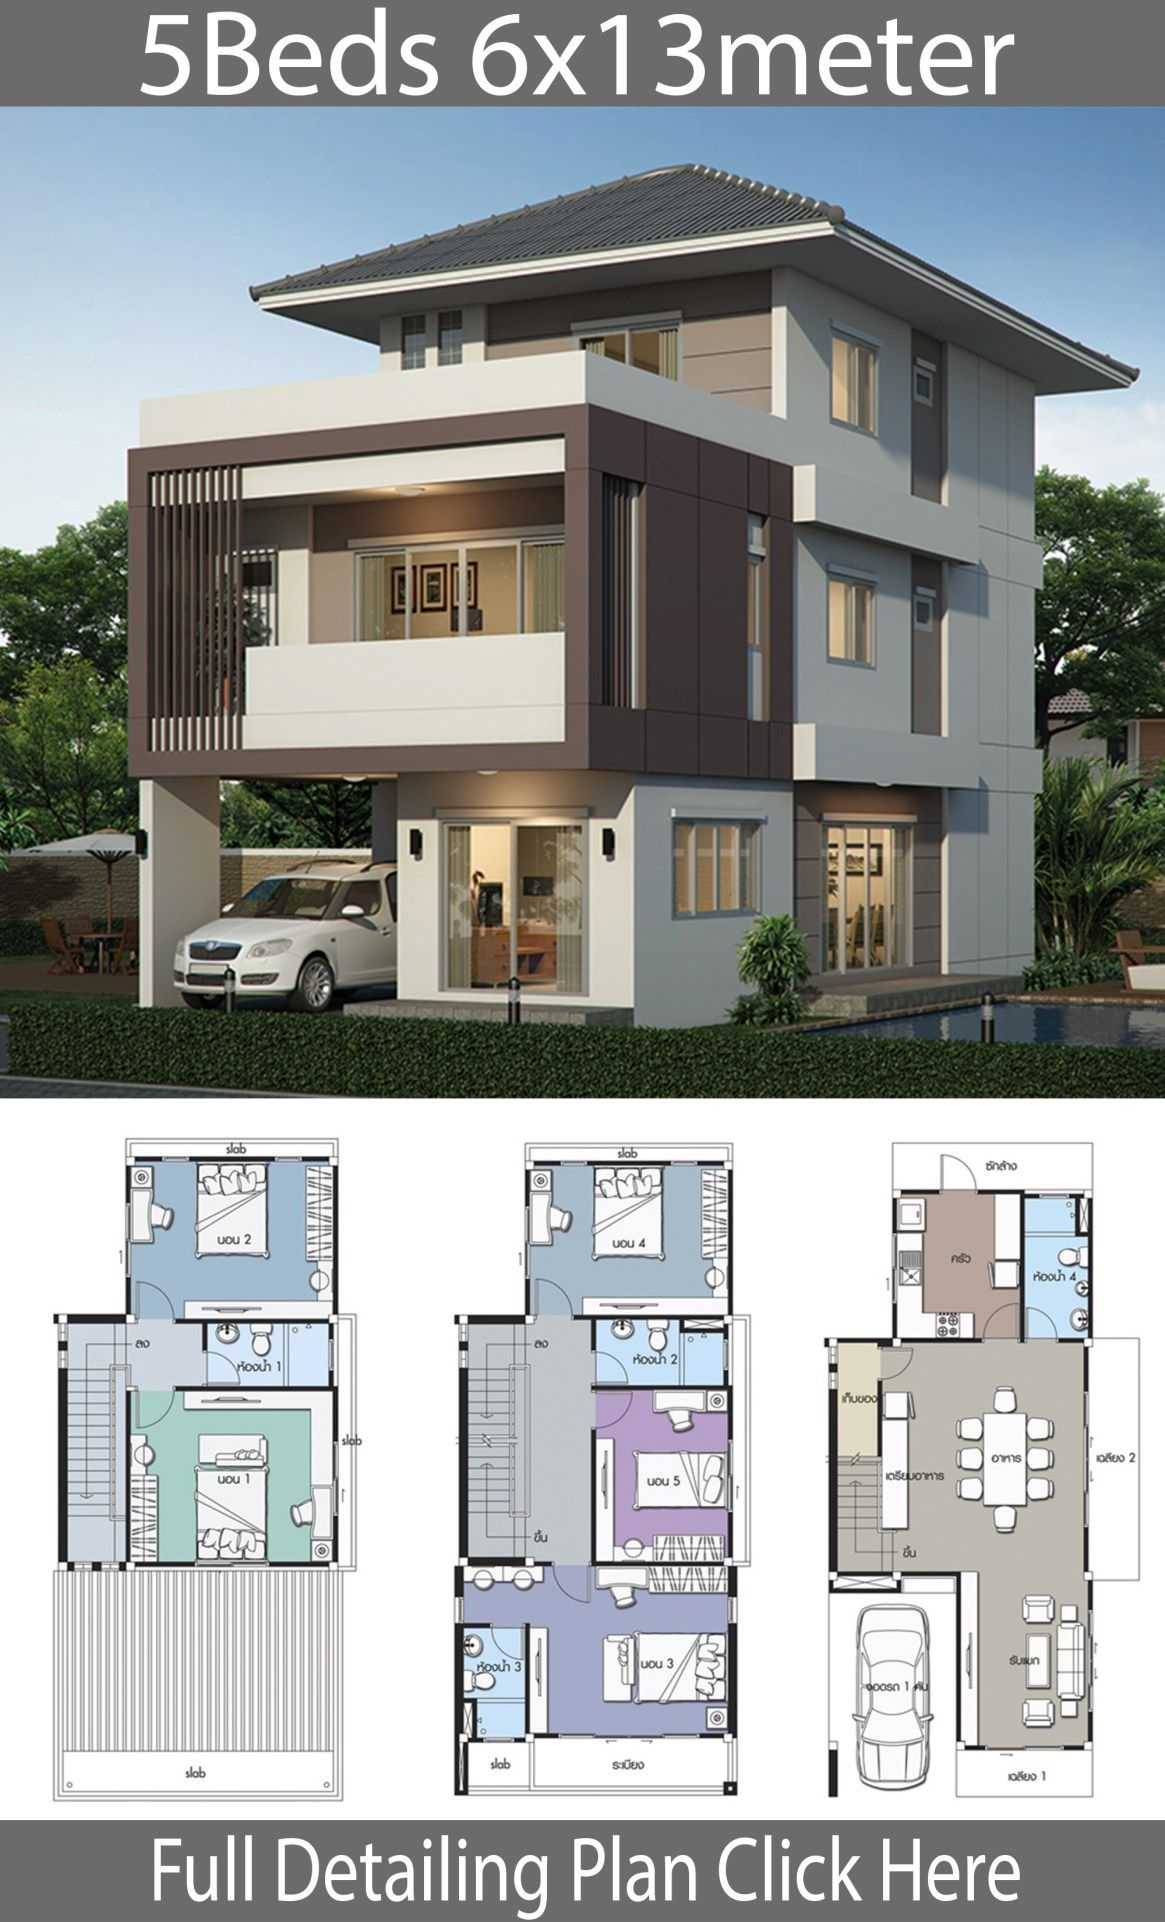 Home Design Plan 6x13m With 5 Bedrooms Home Design With Plansearch Duplex House Design Bungalow House Design 3 Storey House Design